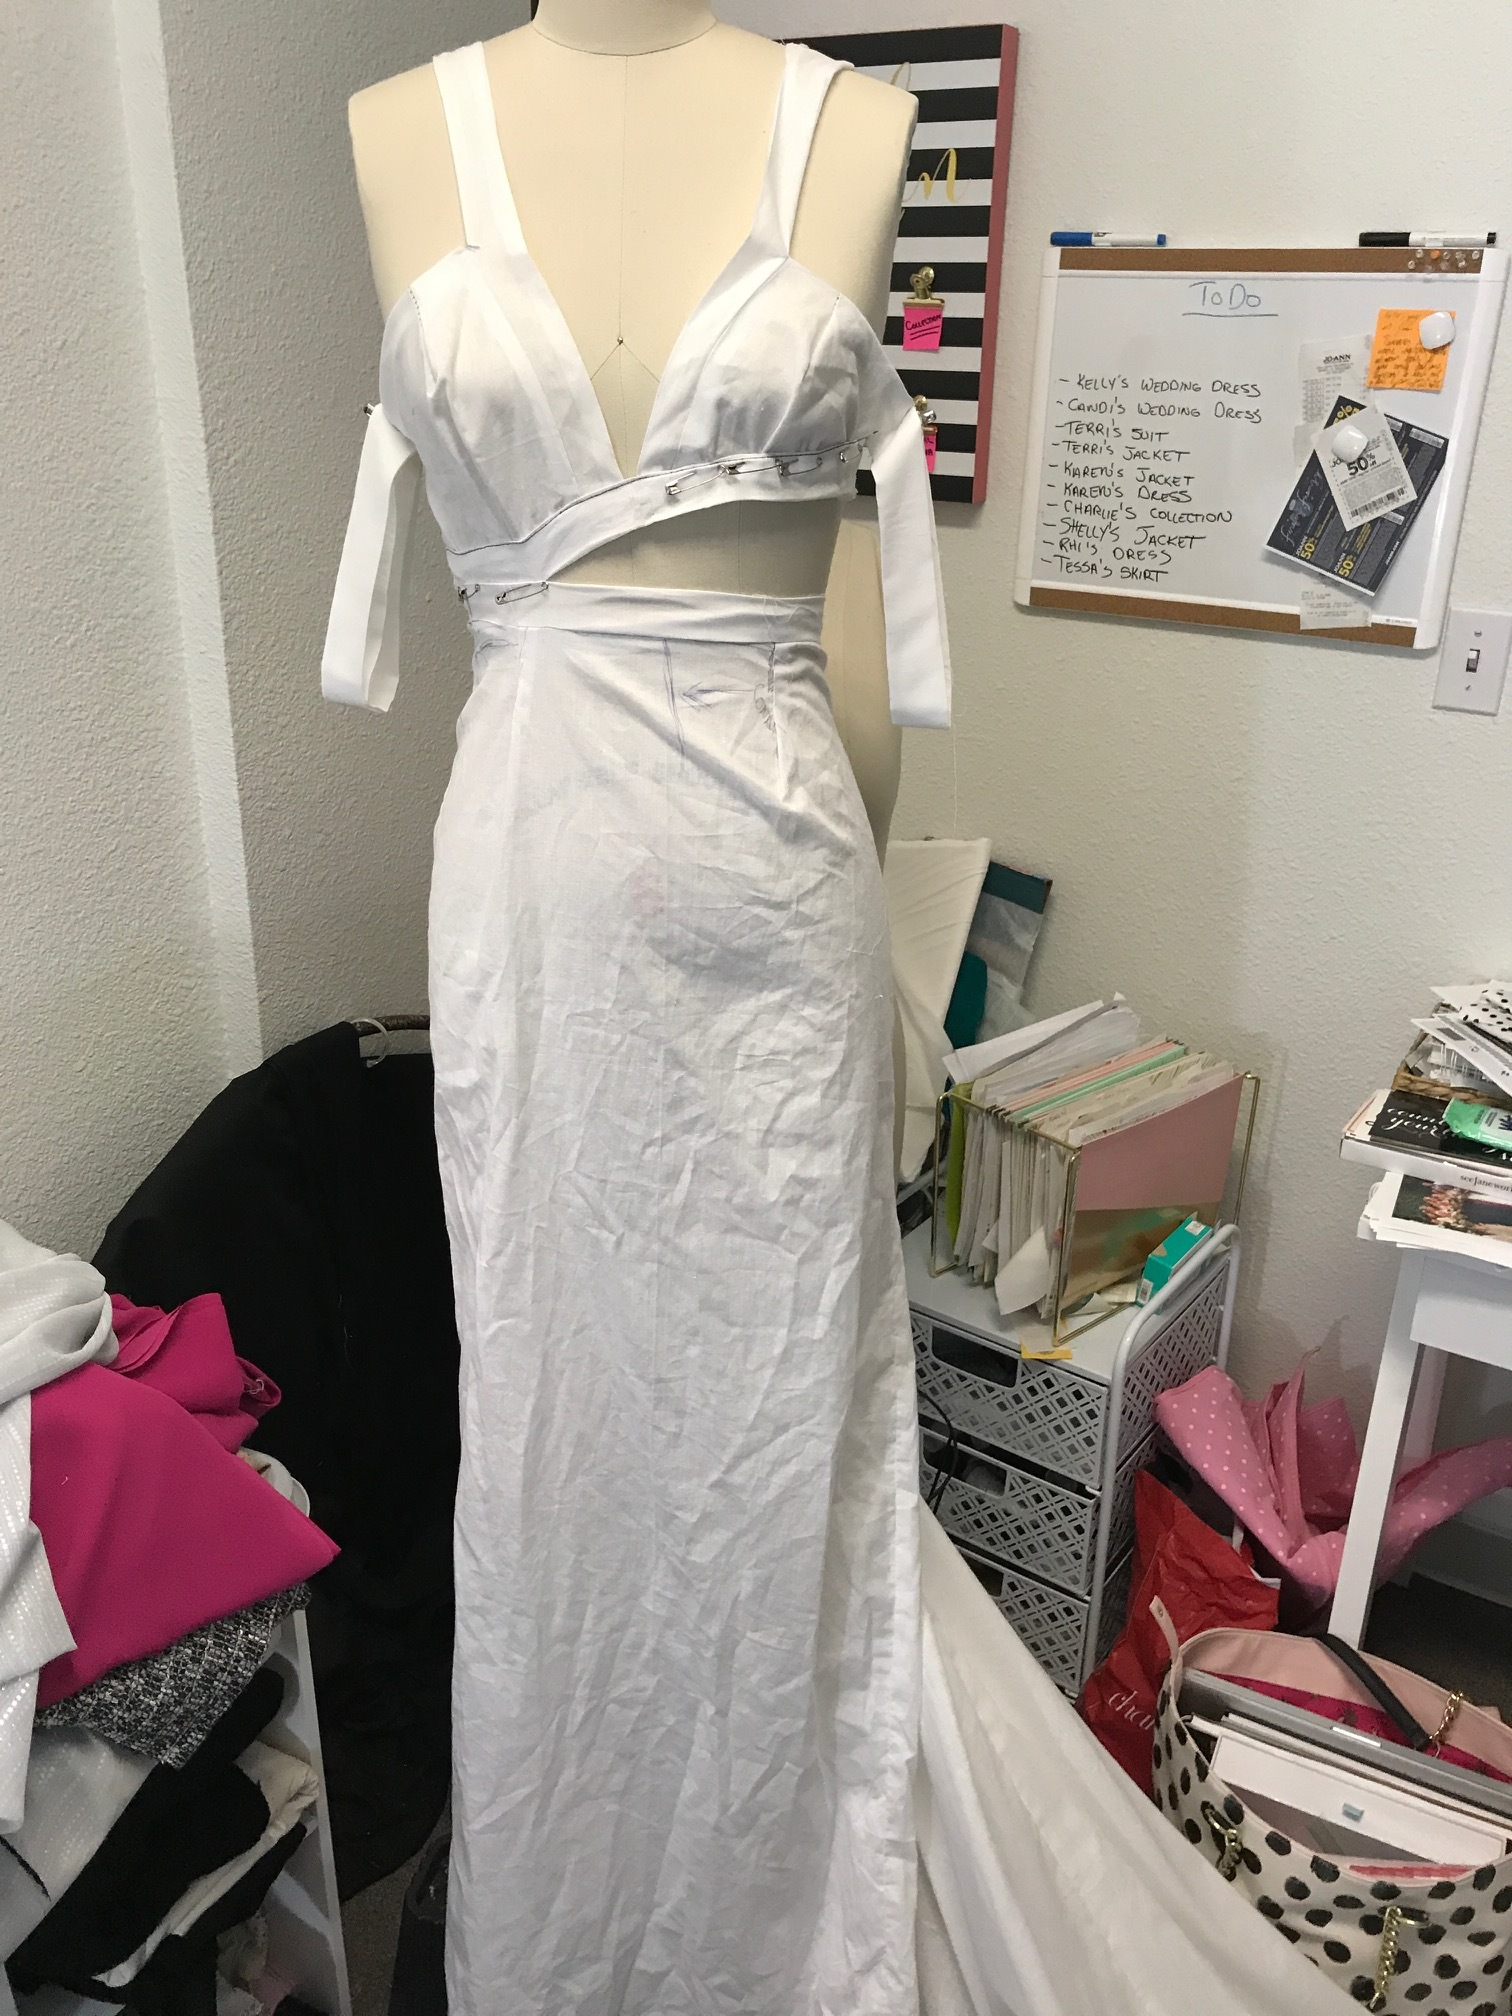 More Mock ups - We continue to work in muslin to get the right fit! Then we move to the fabric!!